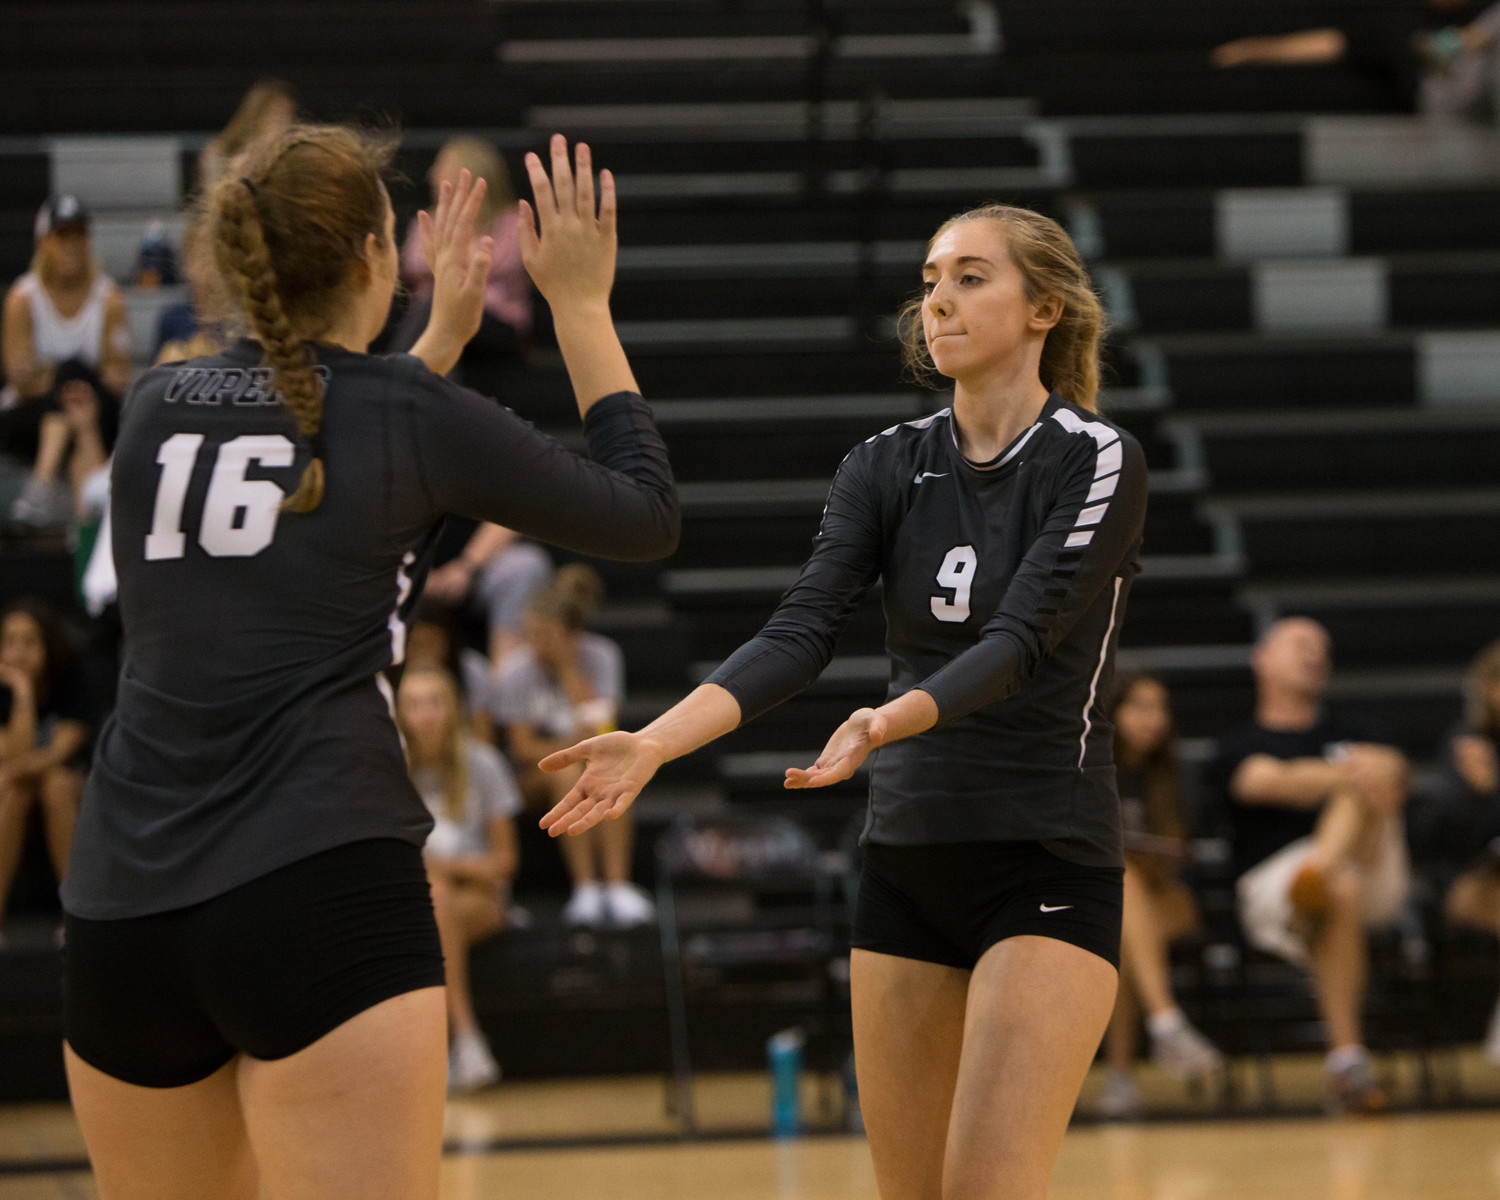 Vandegrift Vipers senior middle blocker Claudia Morris (16) and senior outside hitter Caroline Gehring (9) in action during Leander ISD's annual Volleypalooza tournament at Vandegrift High School in Austin, Texas, on Thursday, August 24, 2017.